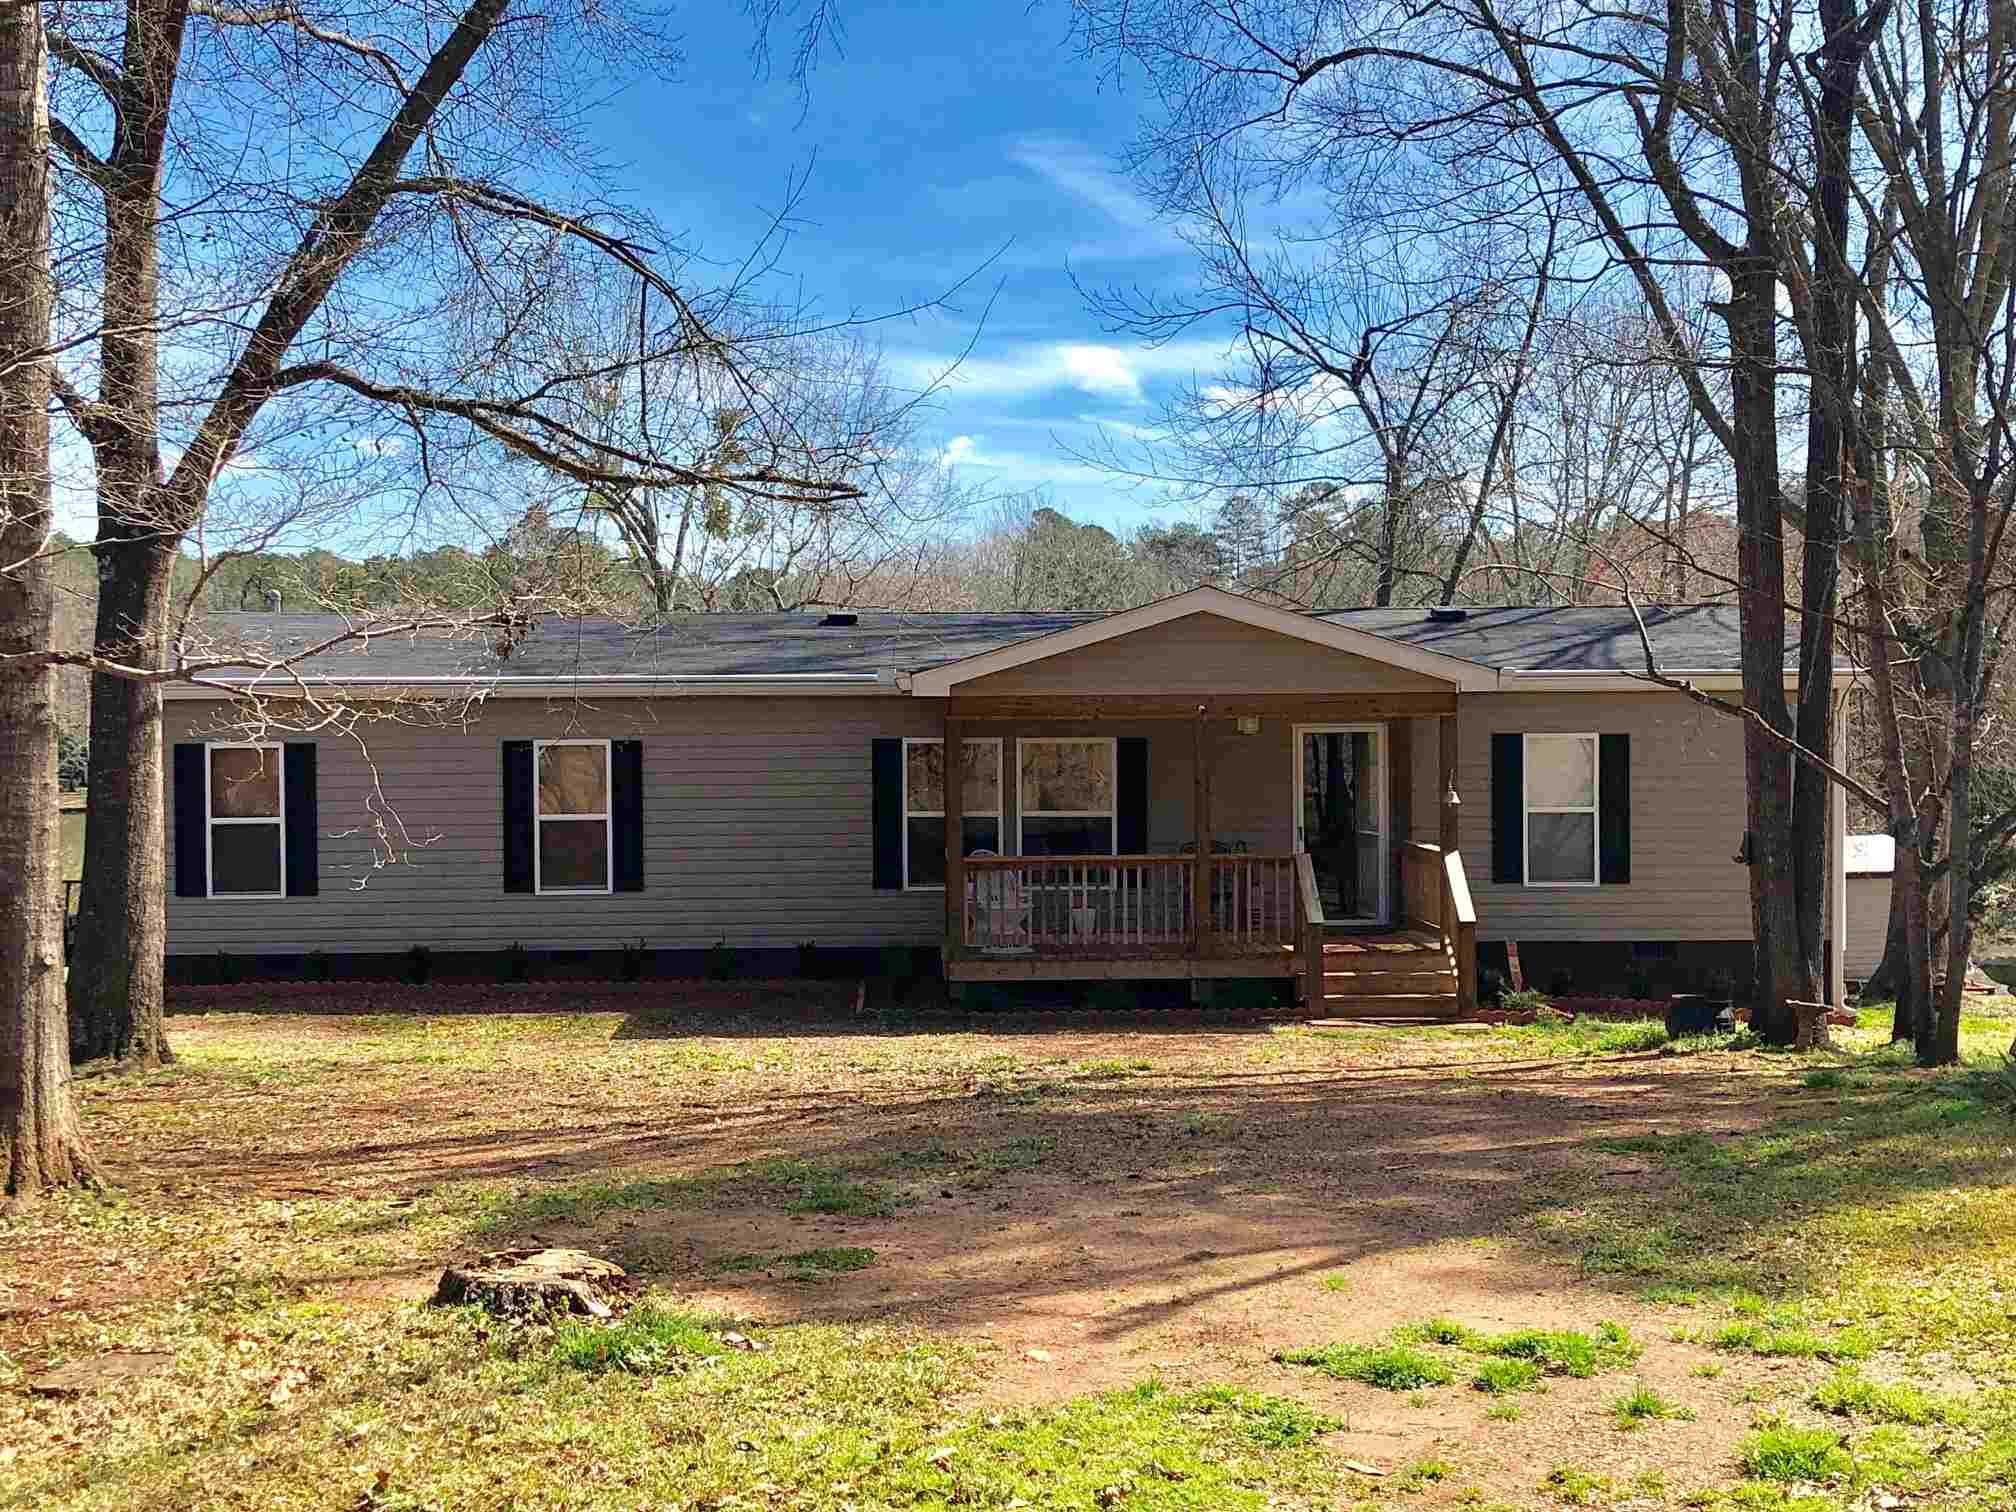 114A BEAR CREEK ROAD, Lake Sinclair, Georgia